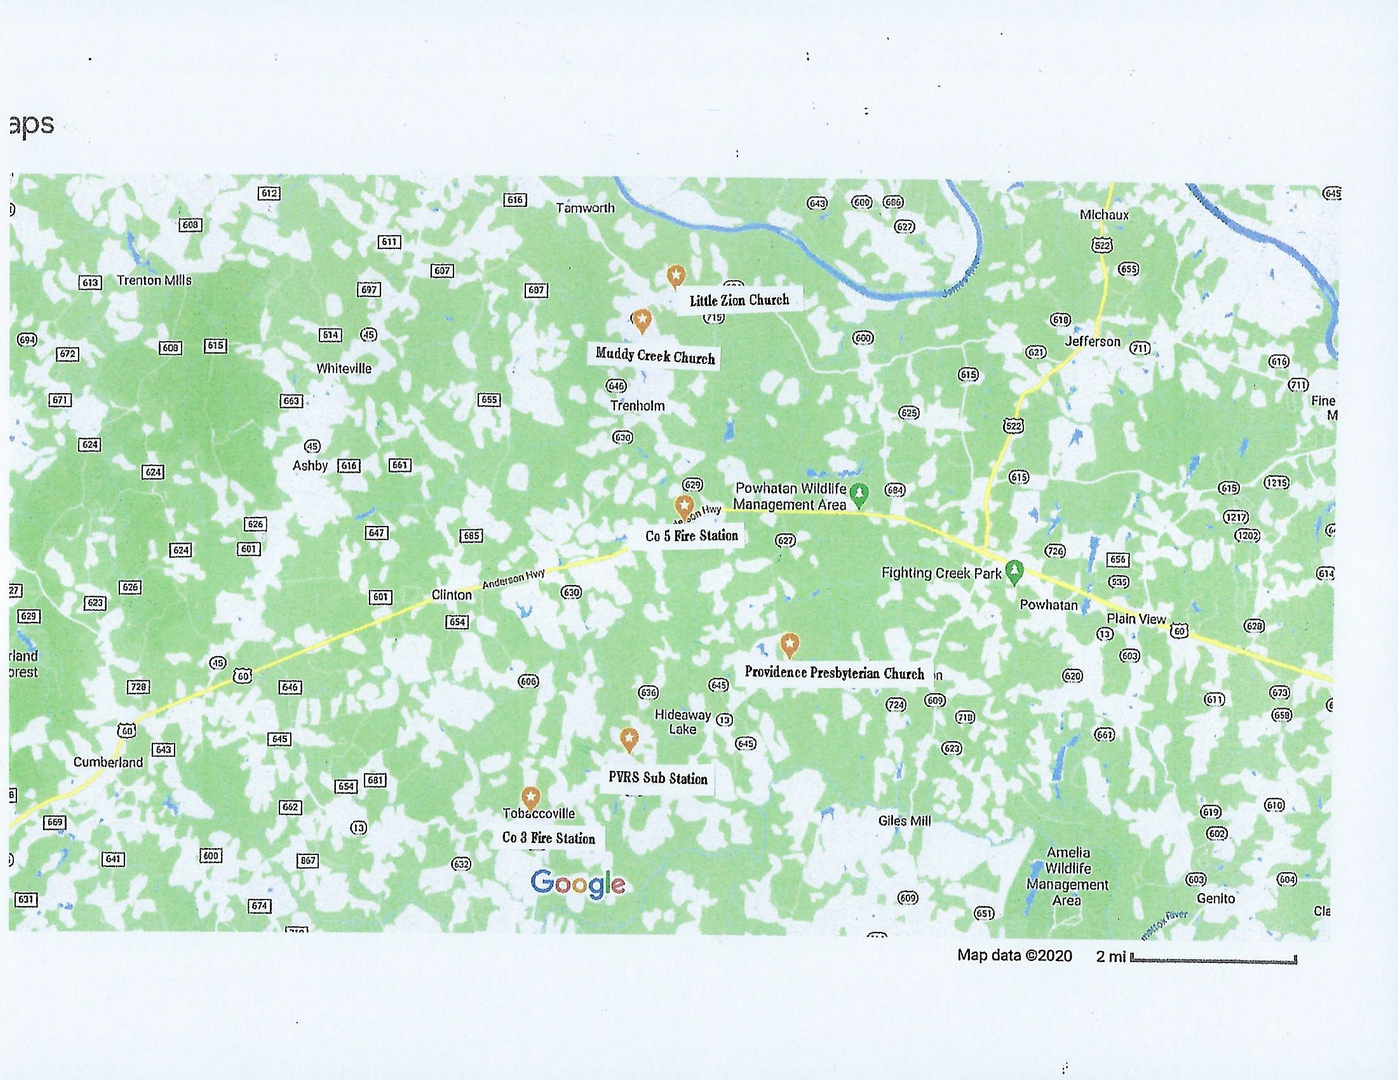 map of wireless bus hotspots available